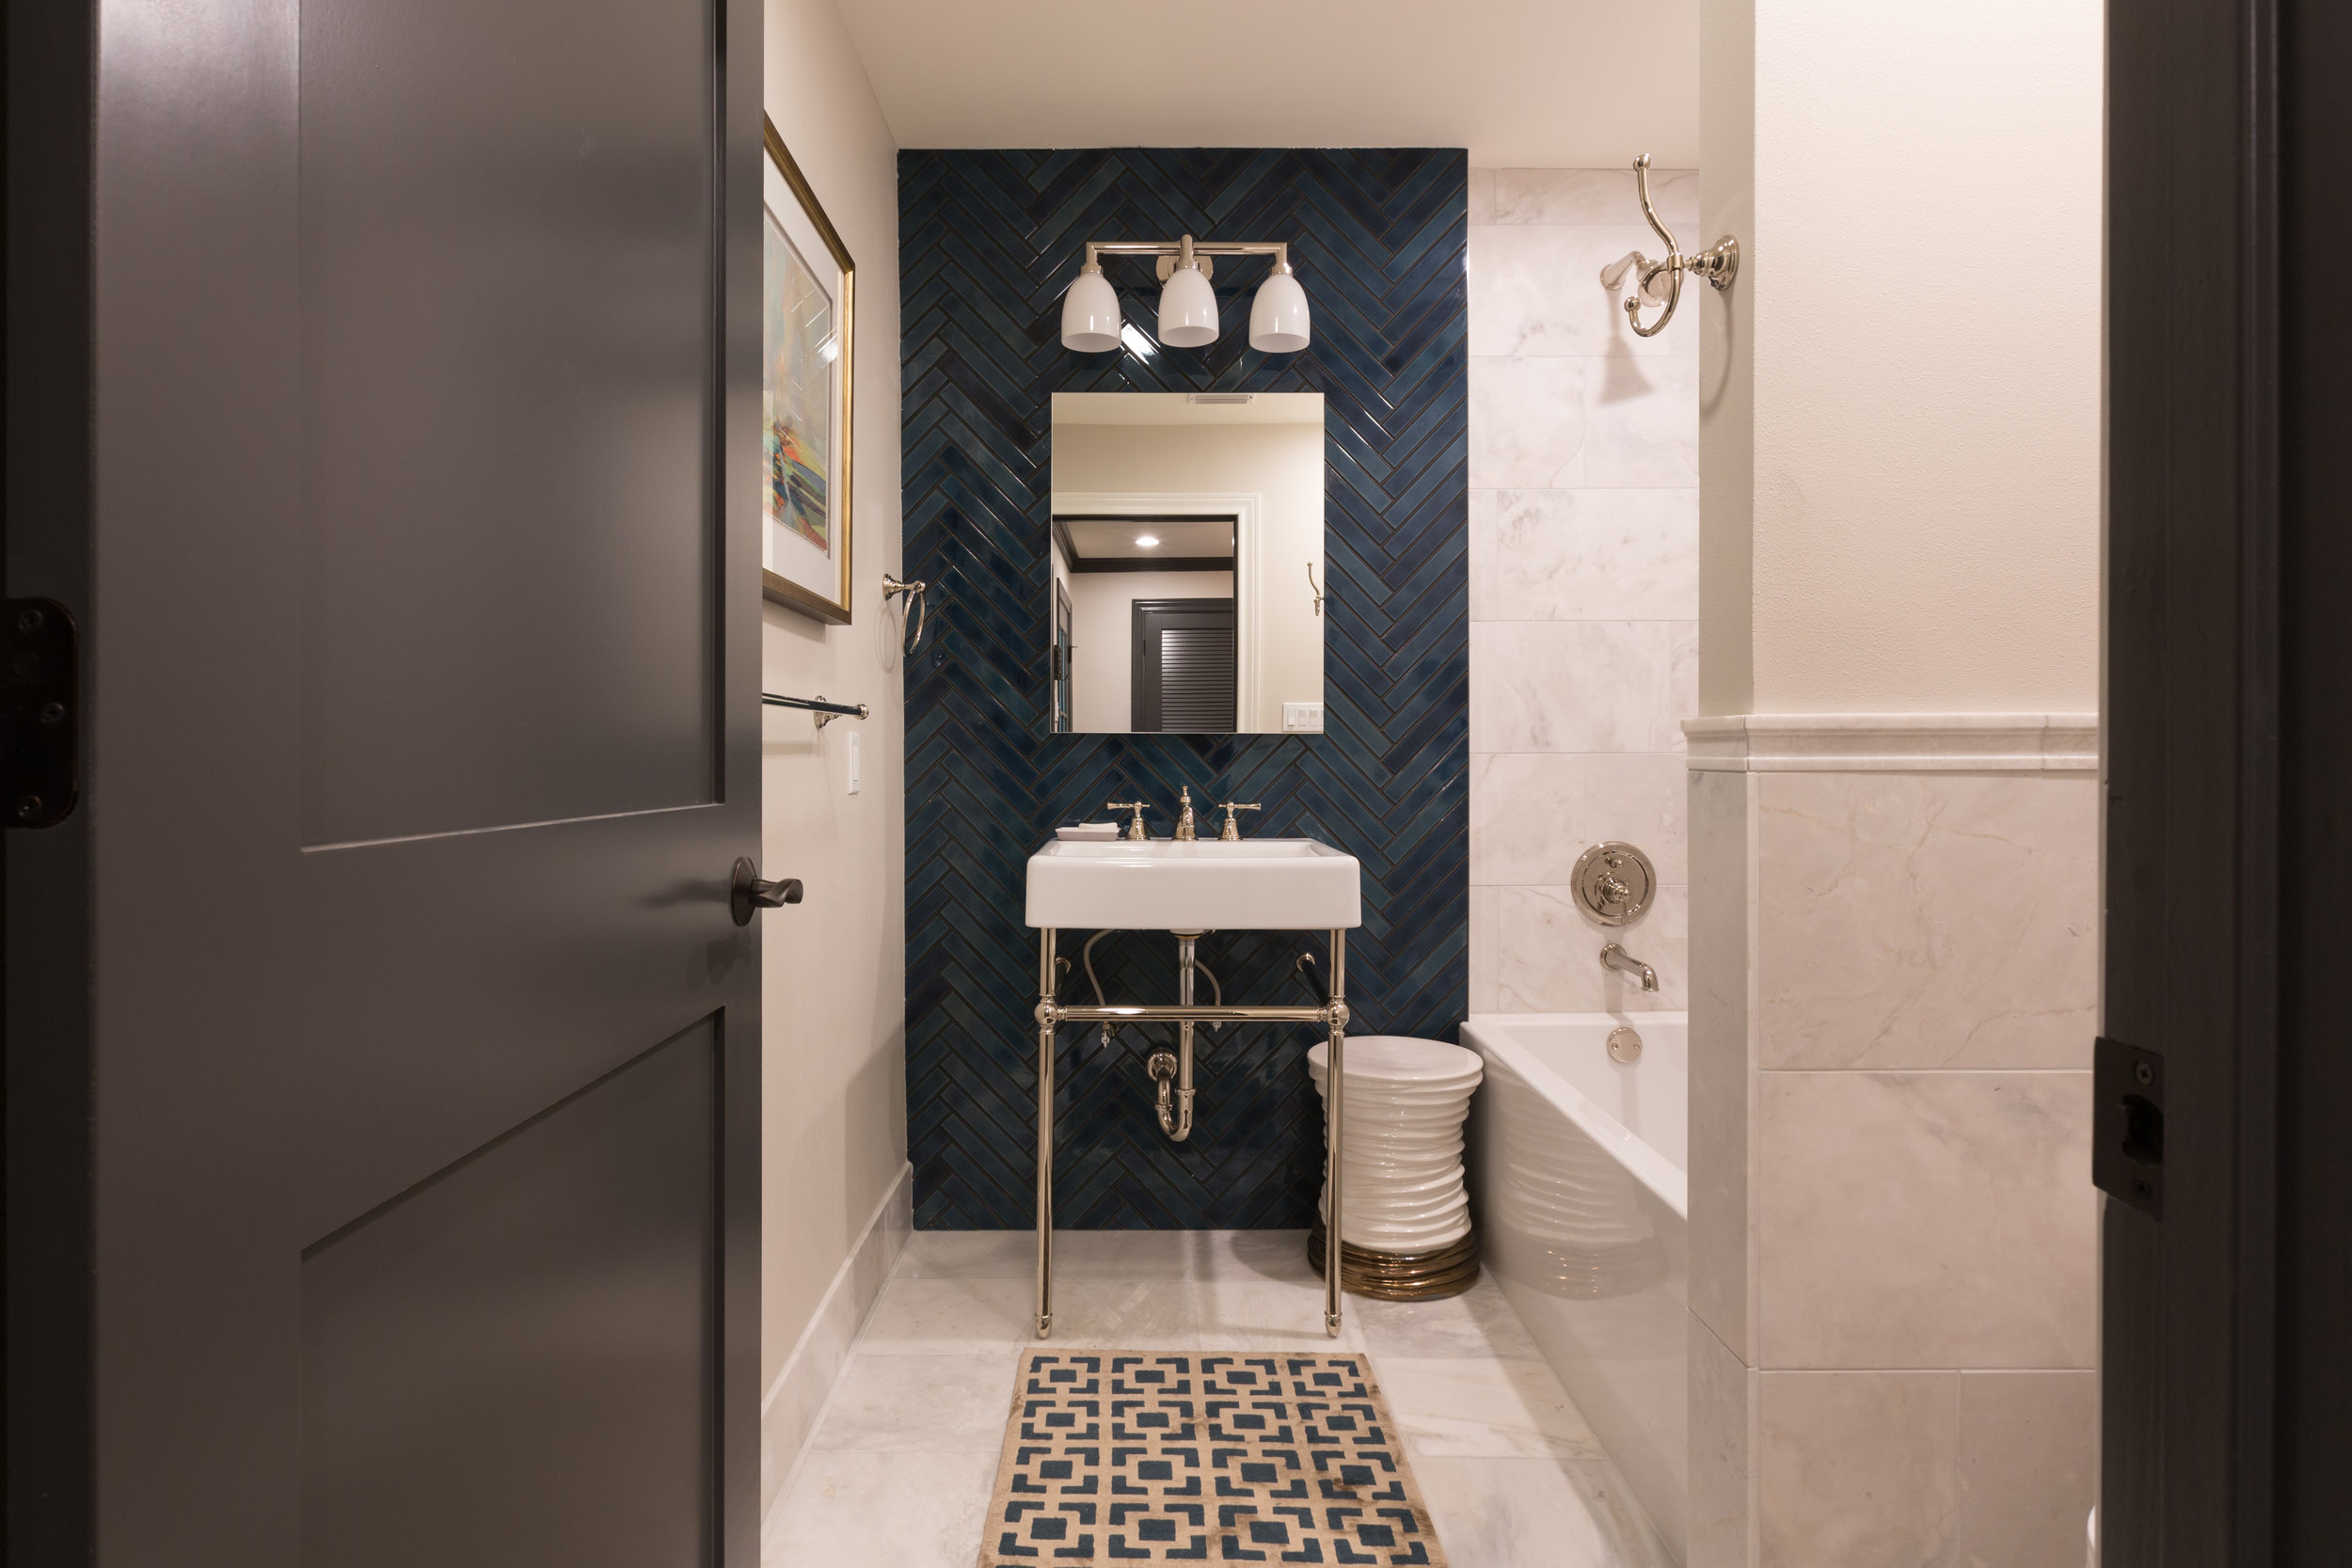 Stunning Ann Sacks tile in guest bathroom of remodeled condo